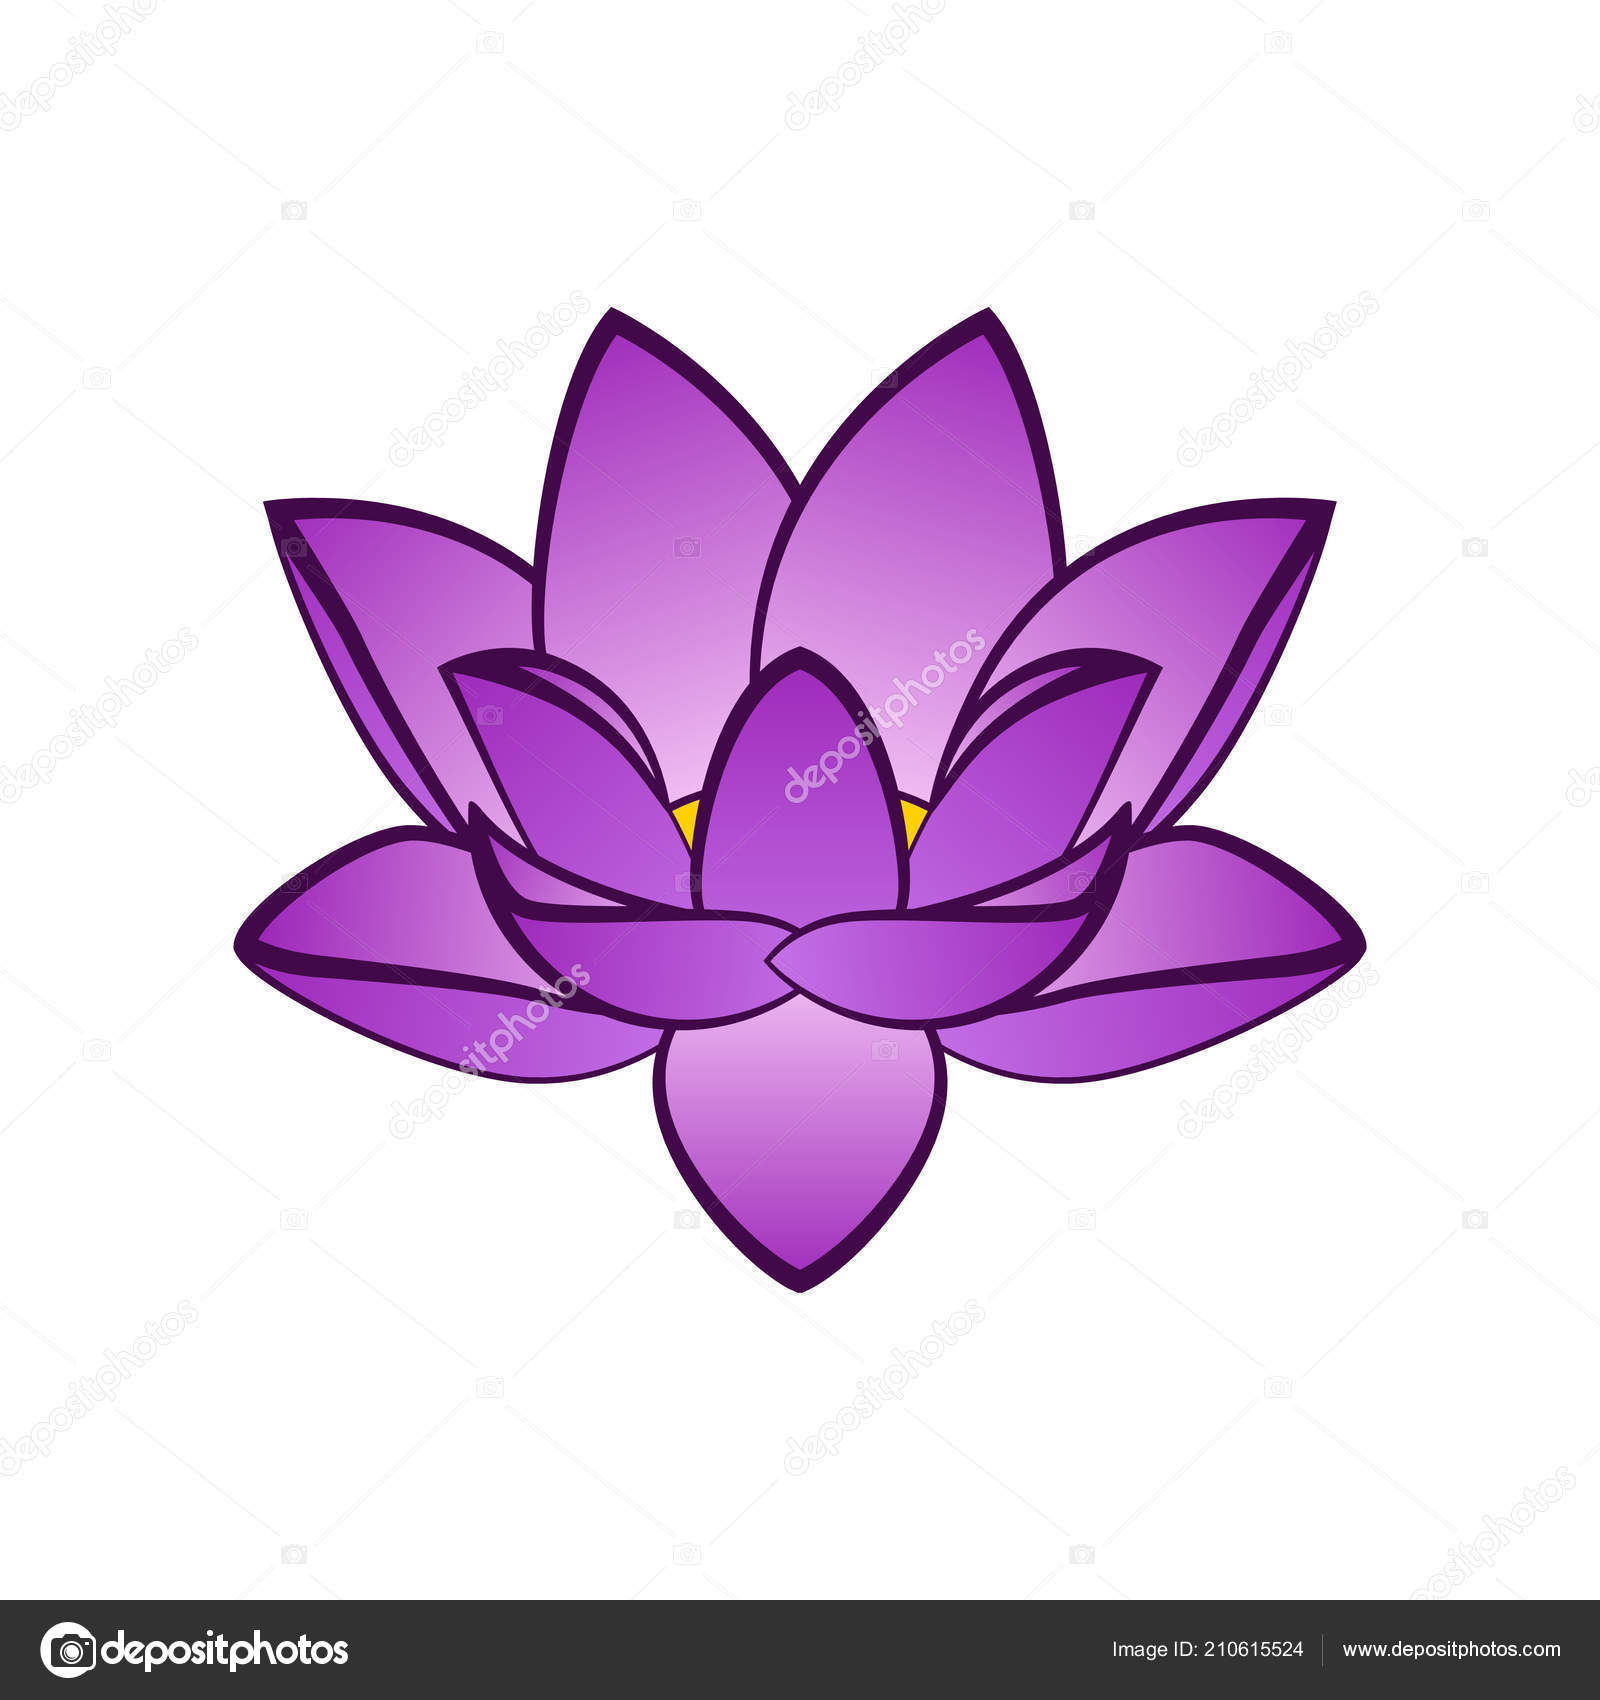 Simple violet lotus flower vector illustration isoleted aquatic simple violet lotus flower vector illustration isoleted aquatic plant white stock vector izmirmasajfo